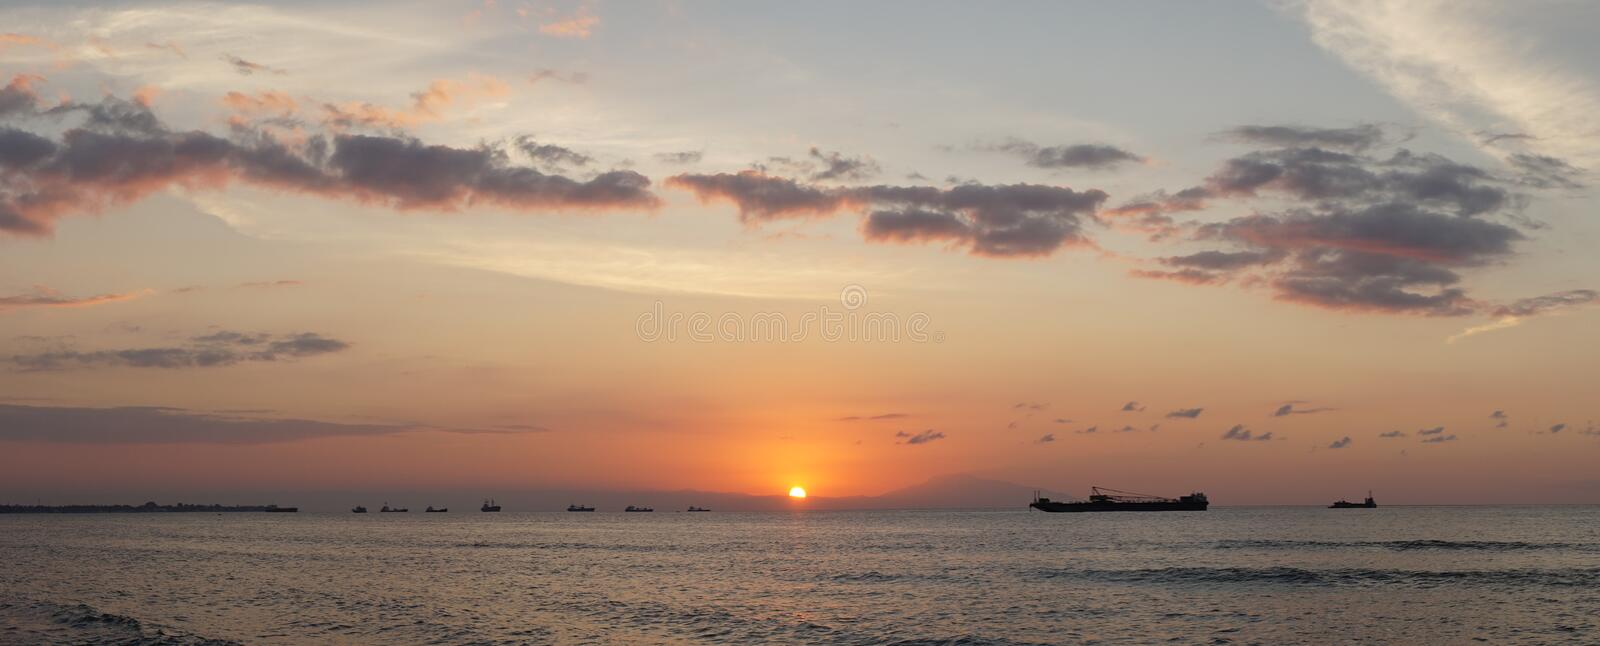 Sunset over the beach at Cape Fatucama in Dili, East Timor.  stock images